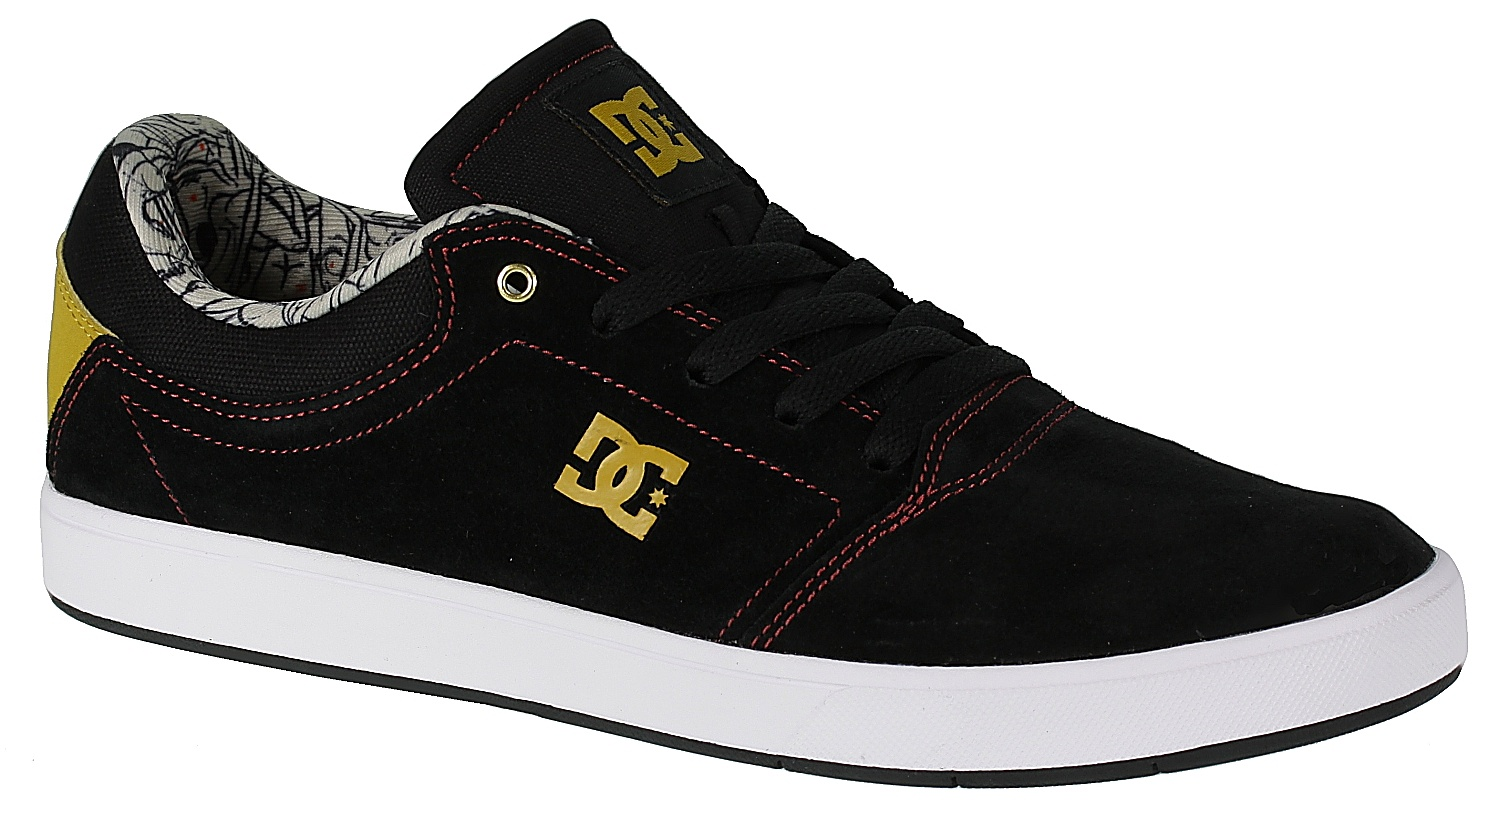 Snowboard Shoes Dc